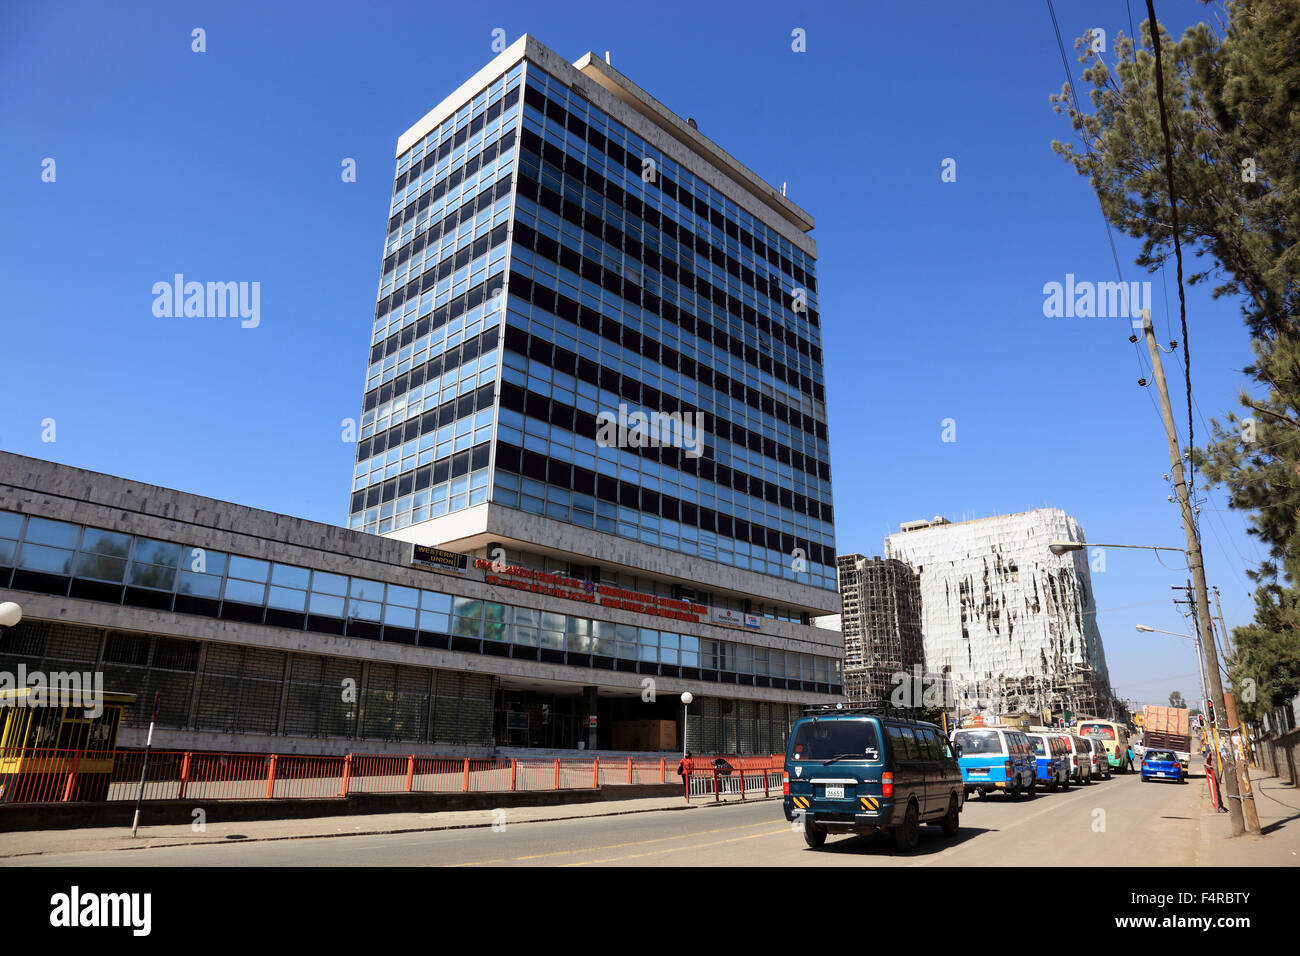 Addis Ababa, in the city center, modern high rise building